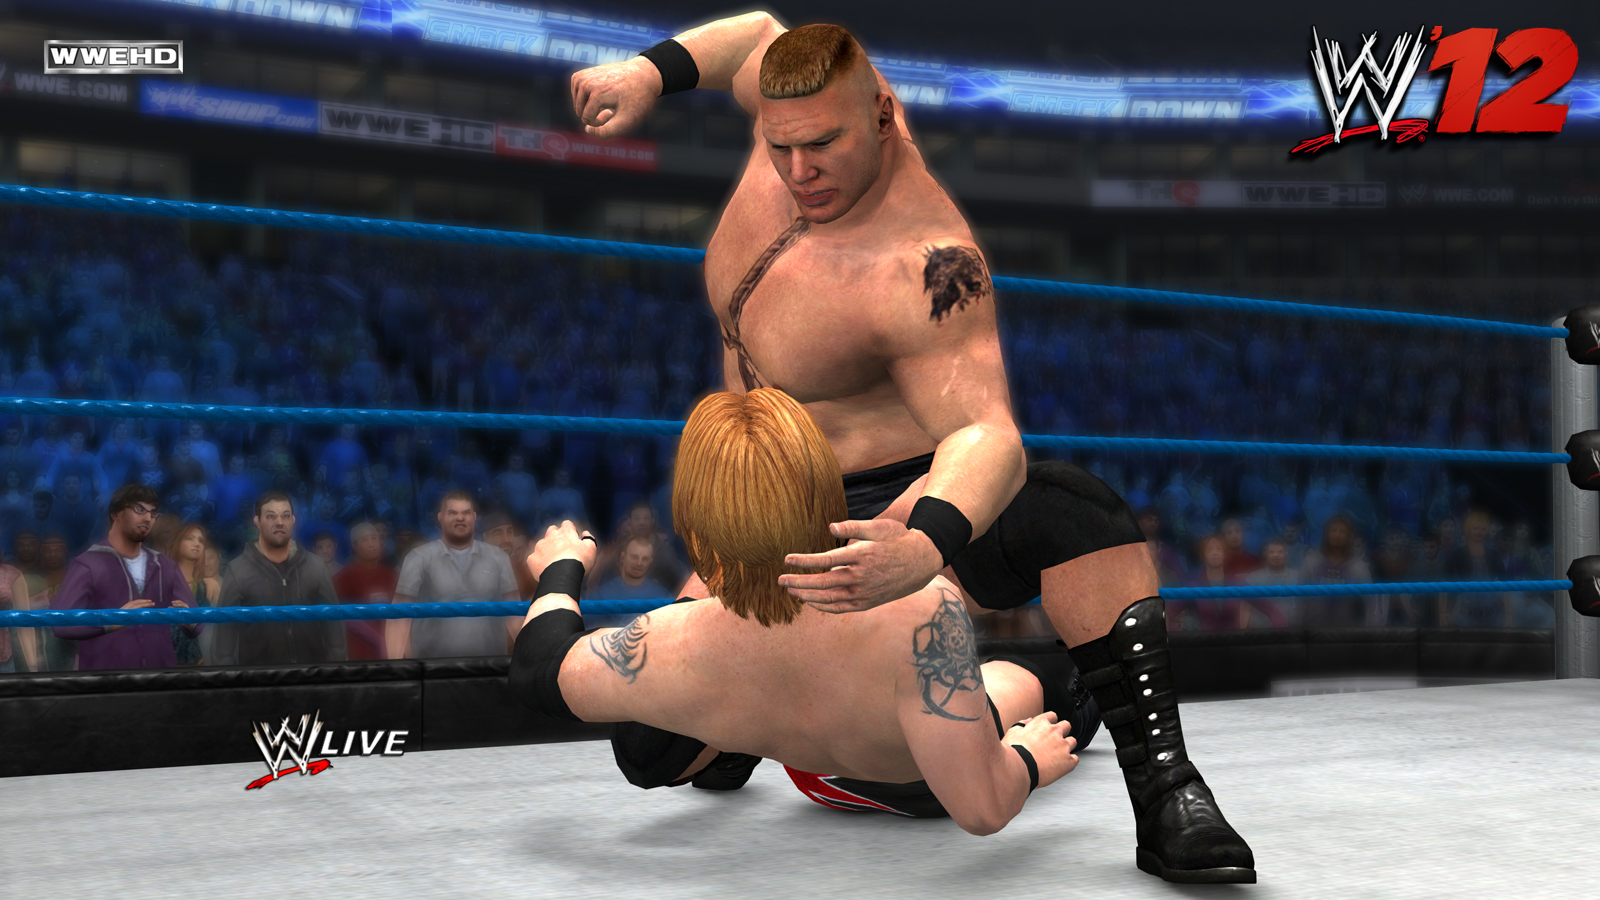 New Wrestling Game For Ps3 : Wwe preview hands on with road to wrestlemania and